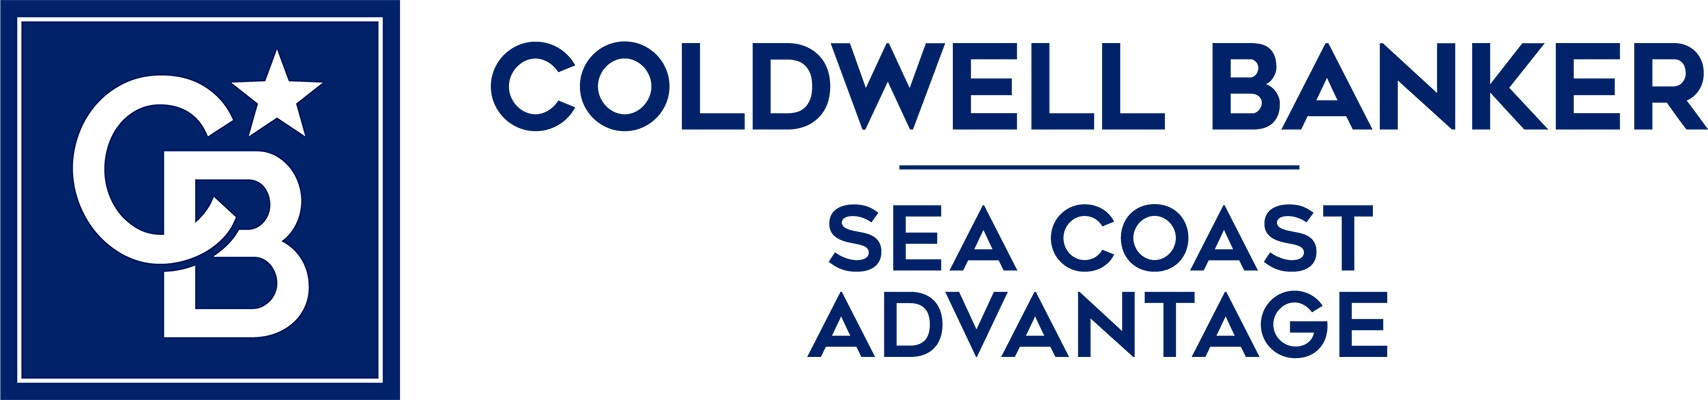 Wade Wilson - Coldwell Banker Sea Coast Advantage Realty